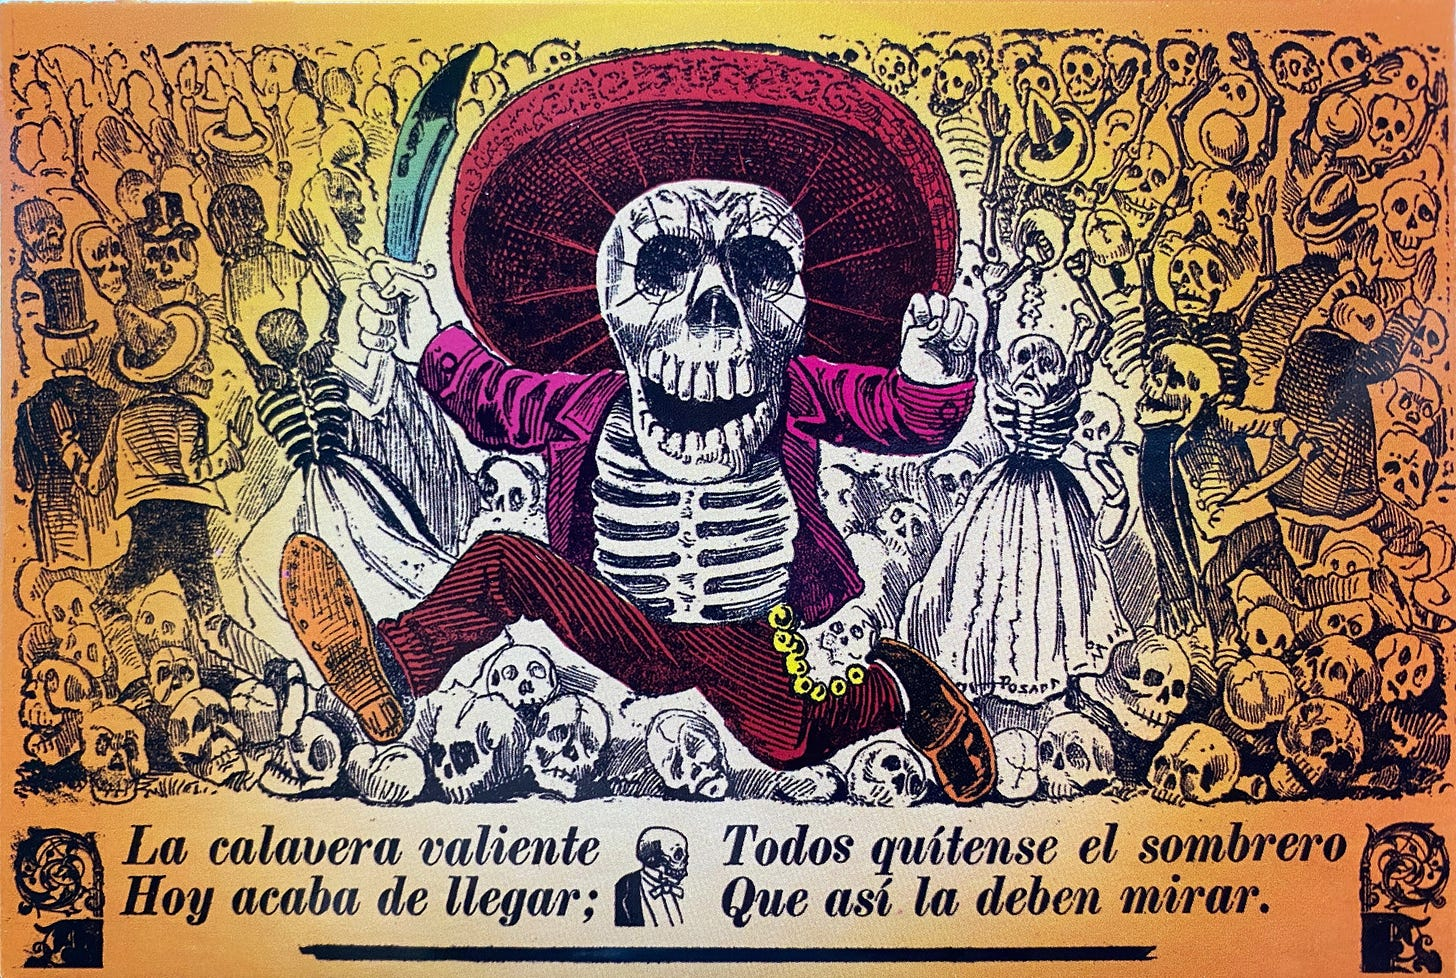 A skeleton wearing a big sombrero, a jacket, charro pants and boots, running towards the viewer with a knife in their right hand. In the background, a crowd of skeletons, either running away or looking at the armed skeleton, with their arms raised.